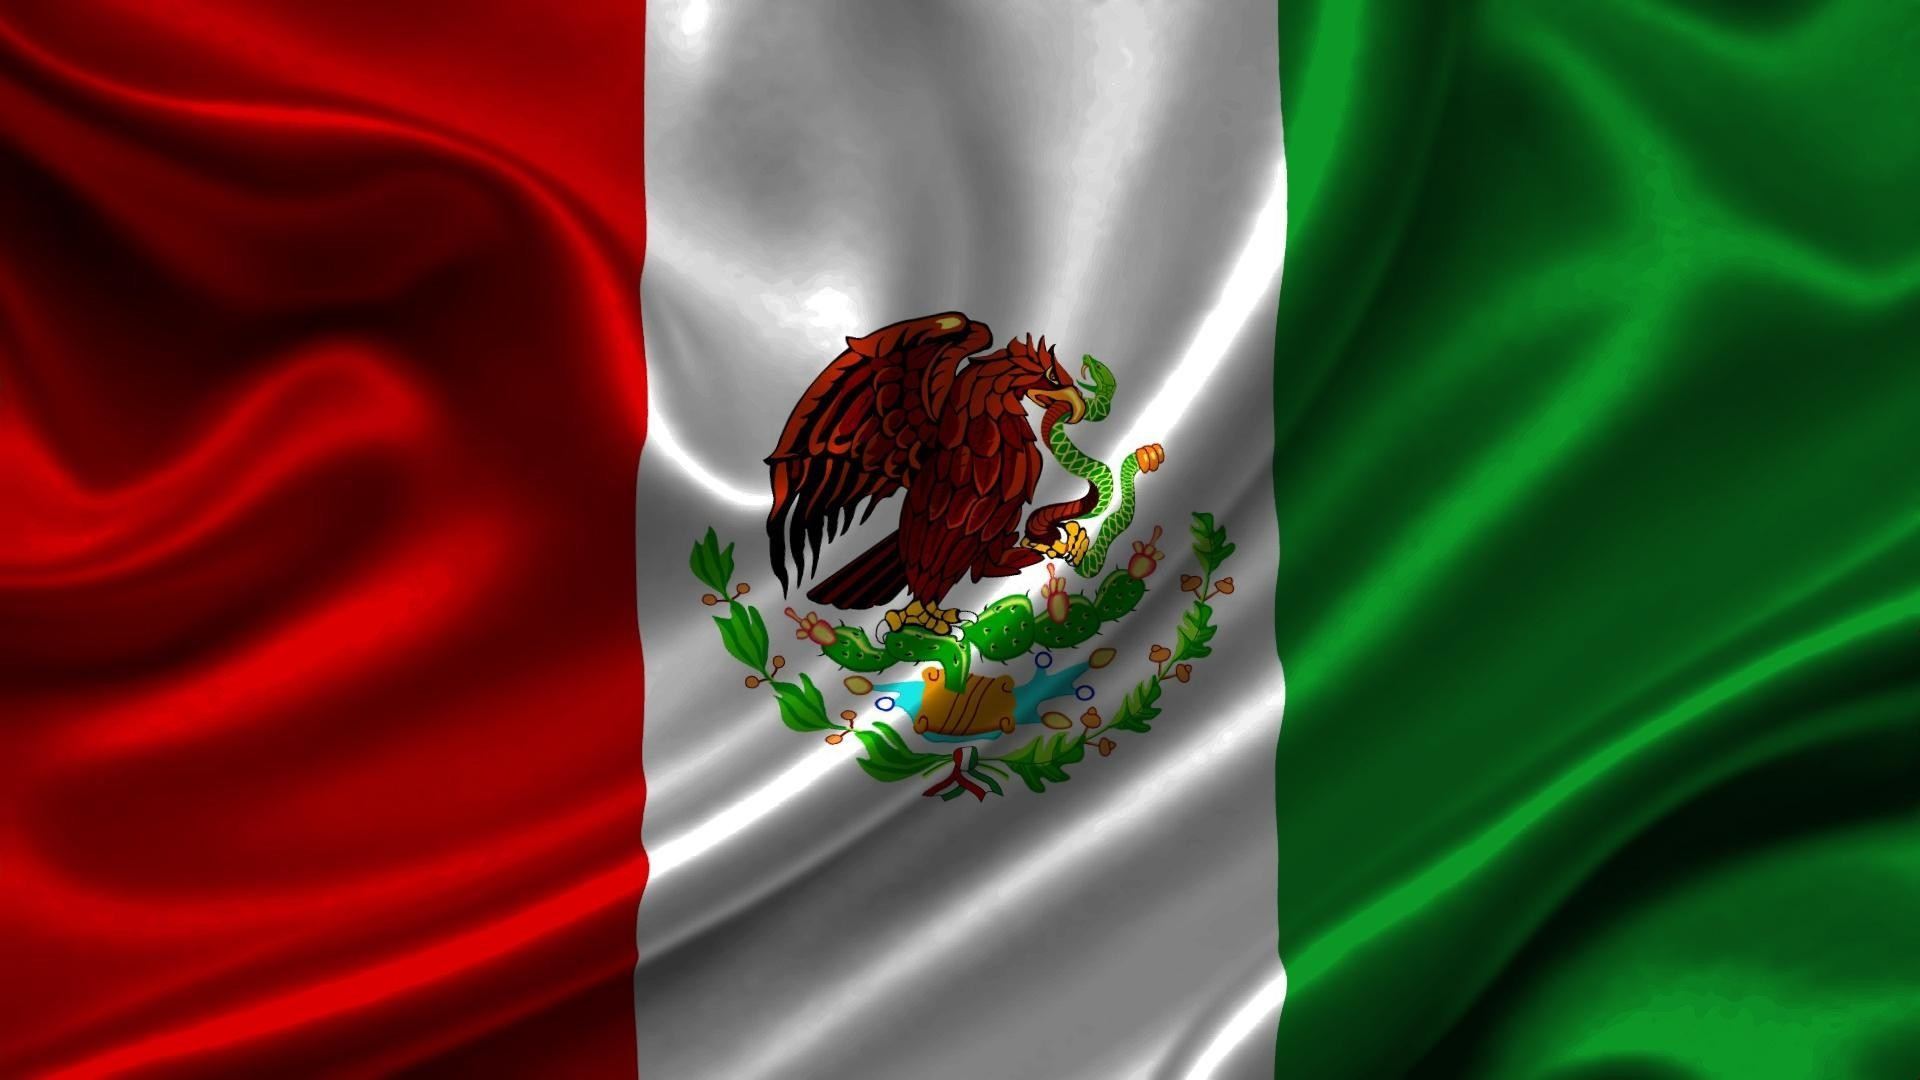 1920x1080 ... Awesome Mexican Flag Wallpaper Amazing free HD 3D wallpapers  collection-You can download best 3D